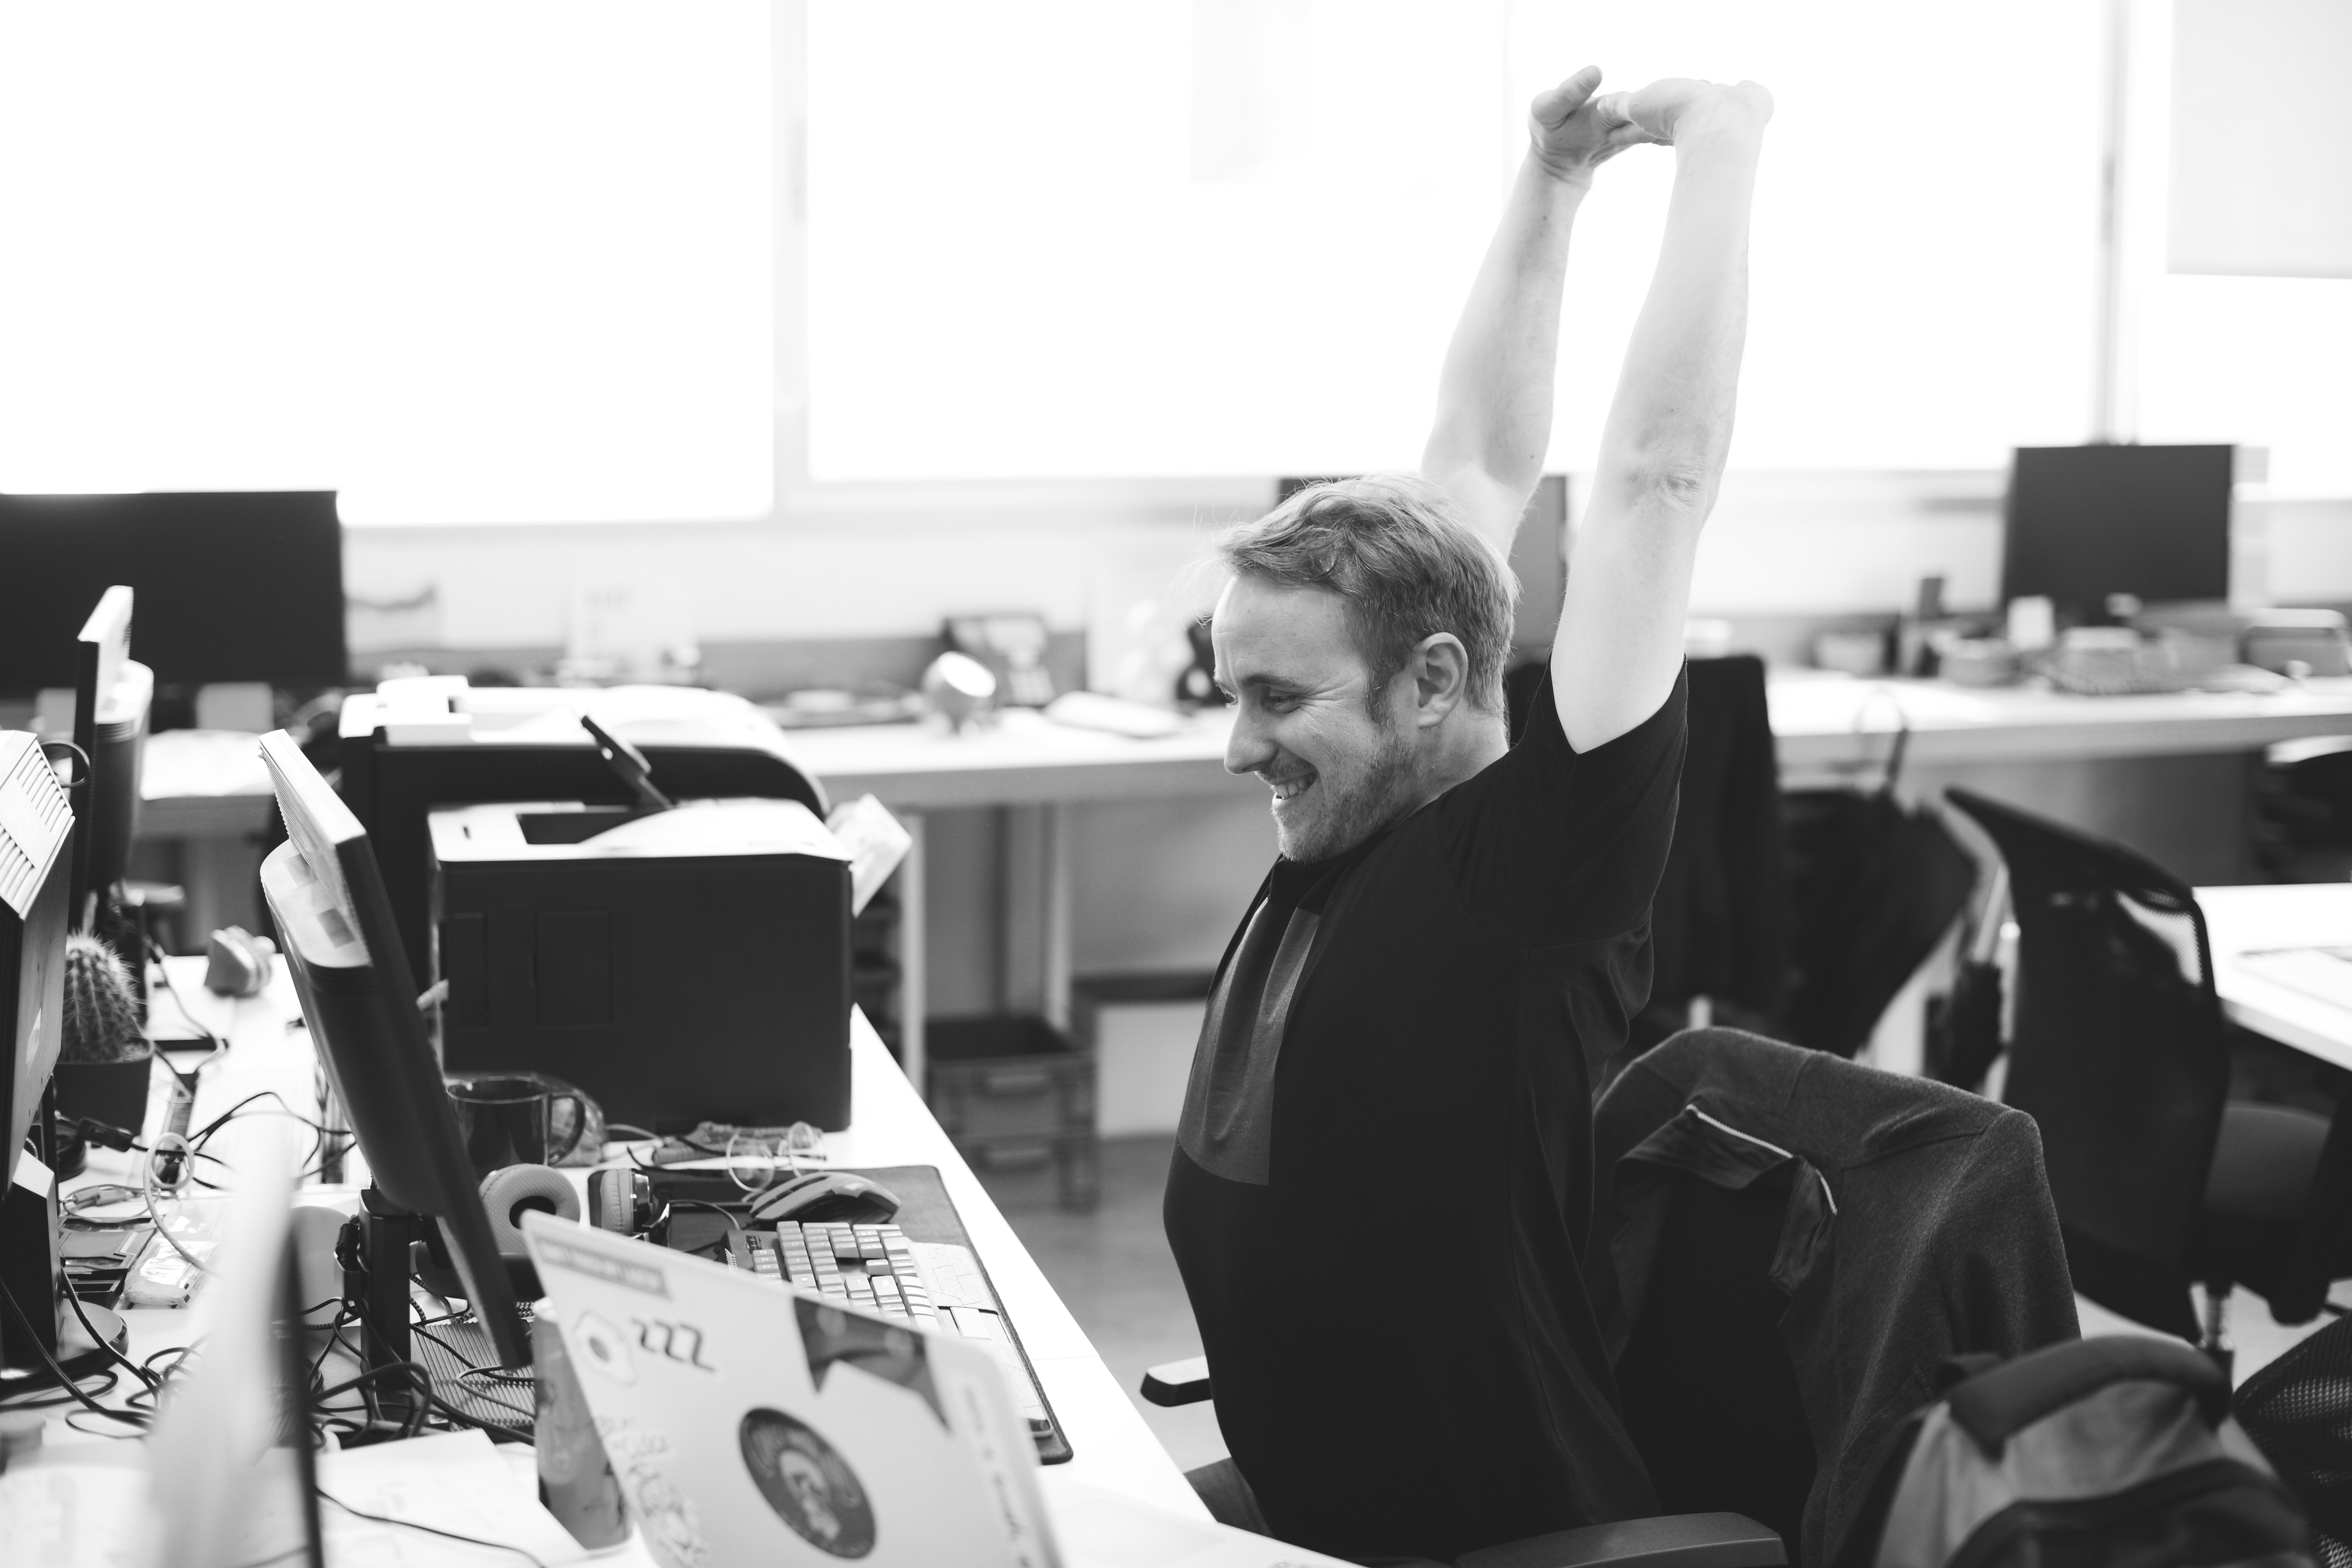 grayscale photo of man stretching his arm